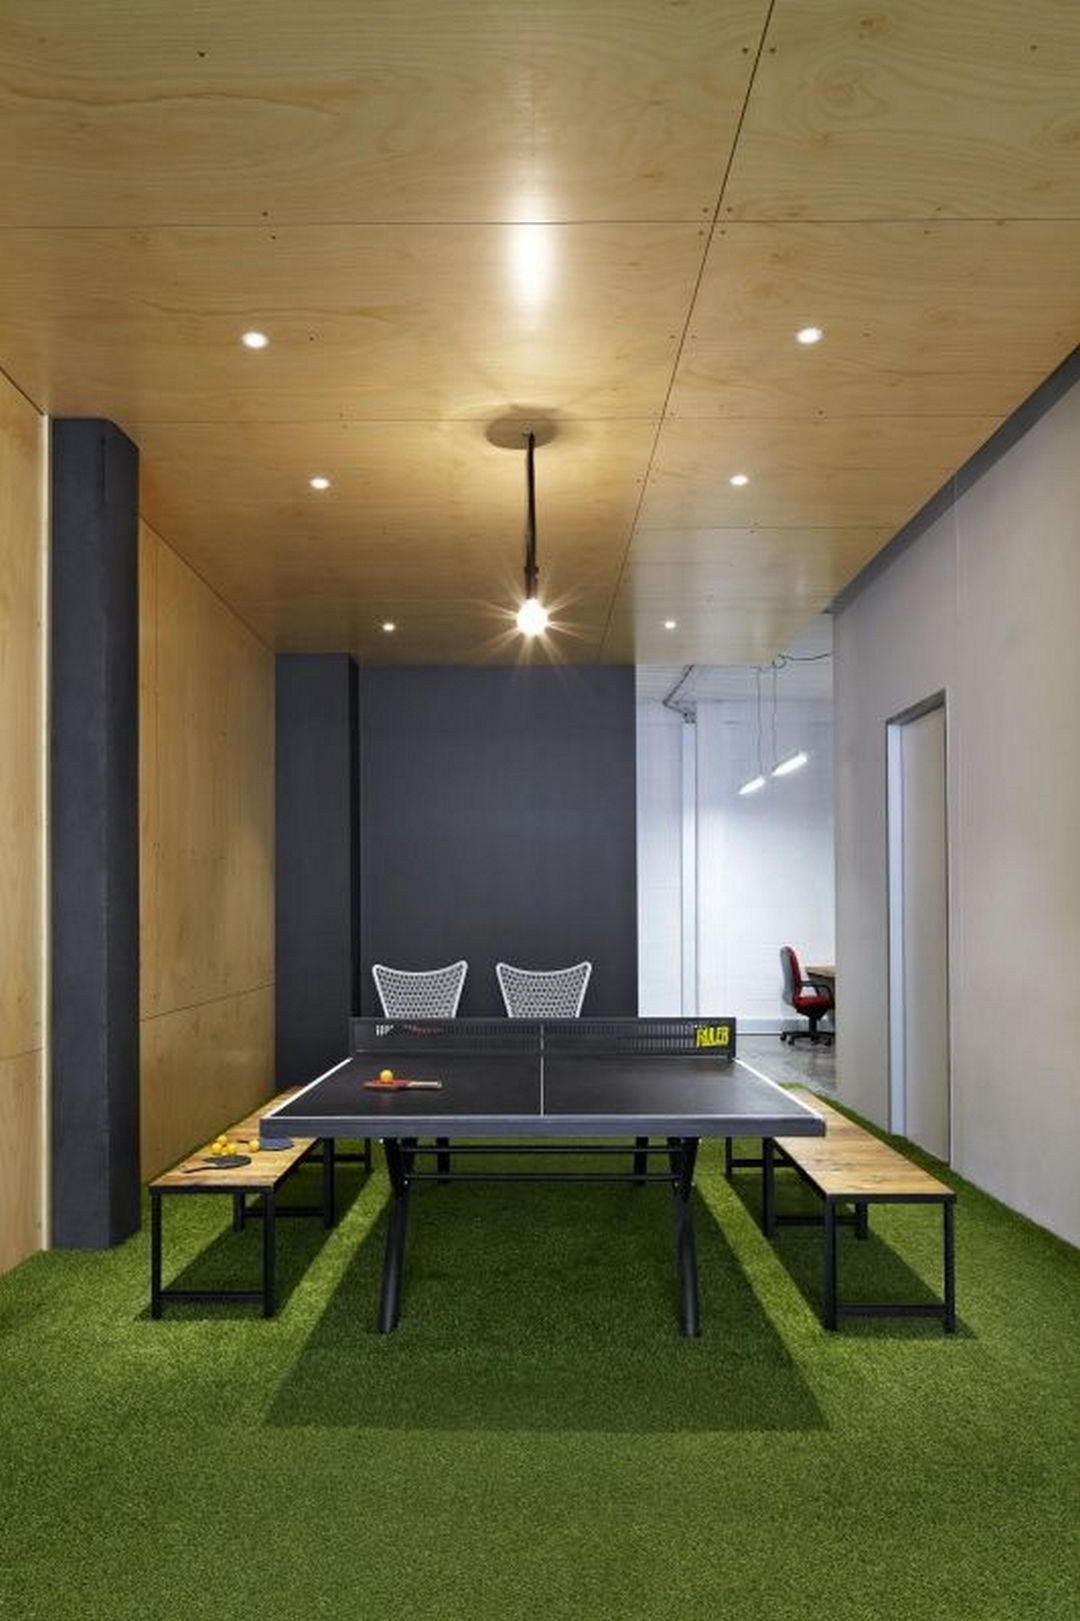 Table Tennis Room Design: Ping Pong Table Tennis Table Idea (24)